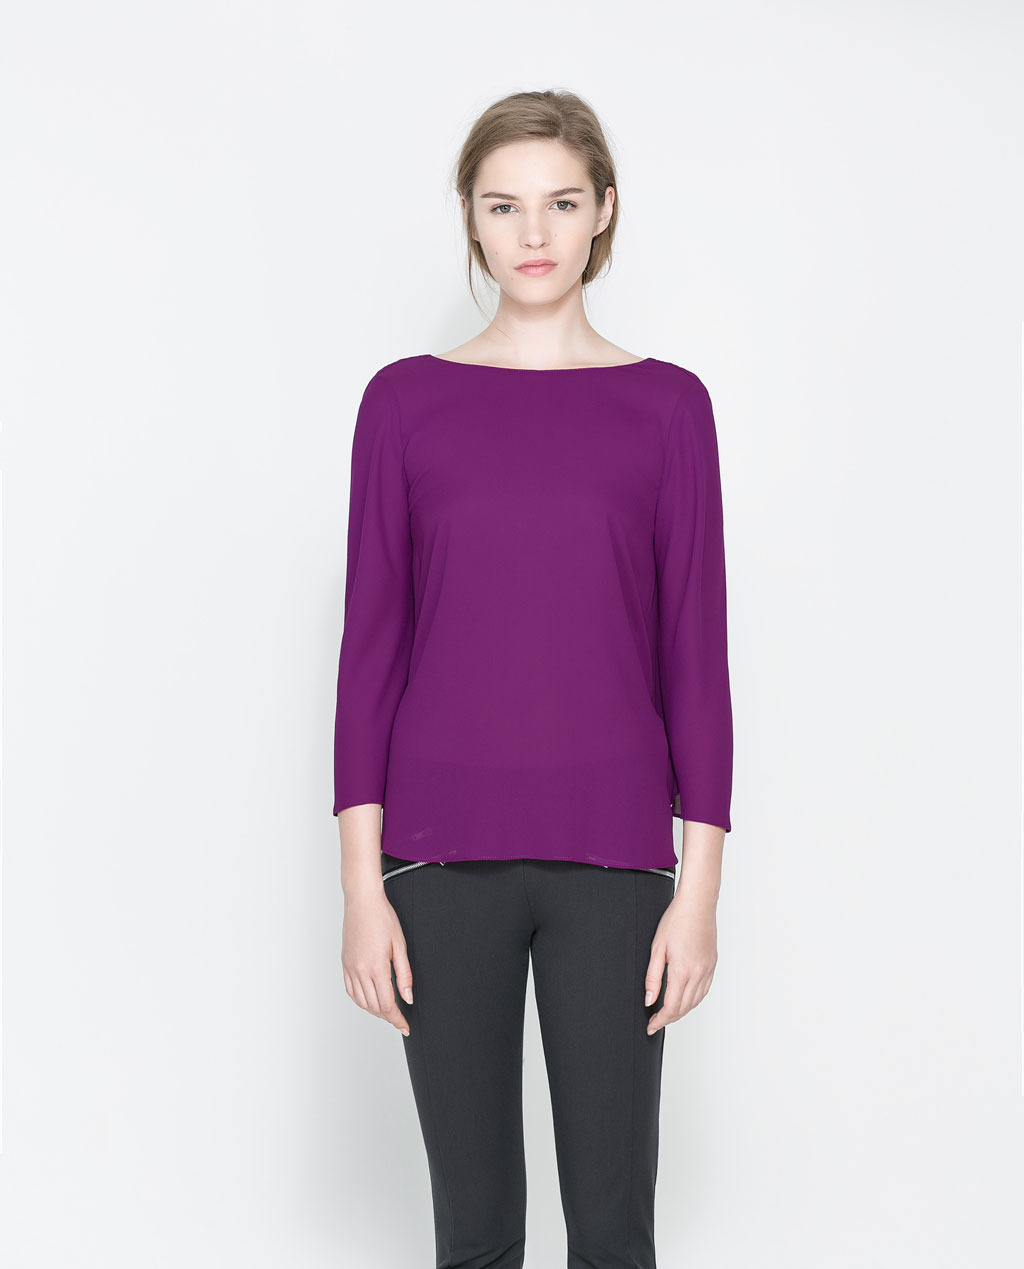 Blouse With Draped Back - neckline: slash/boat neckline; pattern: plain; back detail: cowl/draping/scoop at back; style: blouse; predominant colour: purple; occasions: casual, evening; length: standard; fibres: polyester/polyamide - 100%; fit: straight cut; sleeve length: 3/4 length; sleeve style: standard; texture group: cotton feel fabrics; pattern type: fabric; season: a/w 2013